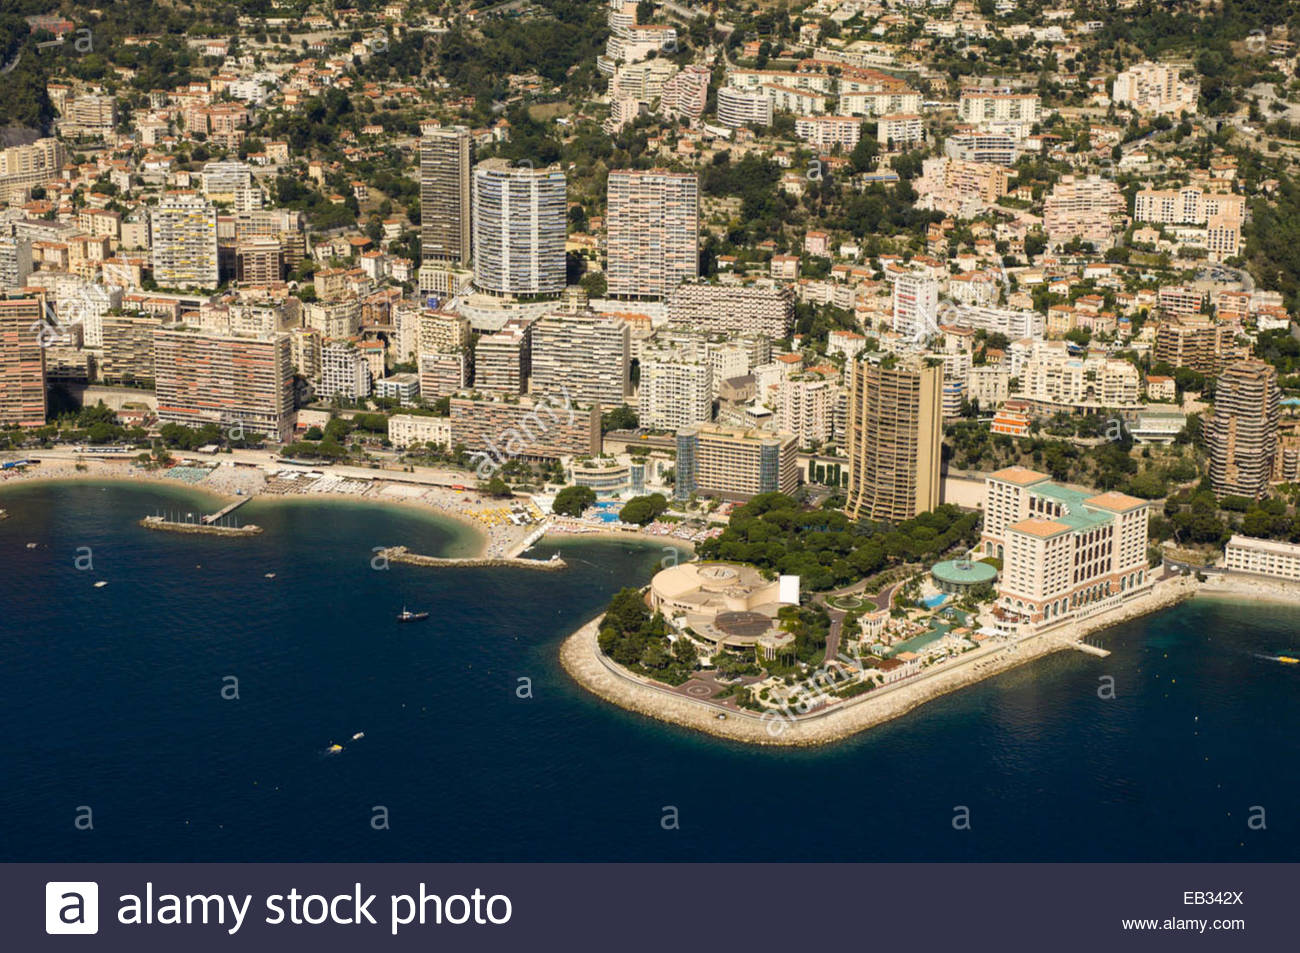 an aerial view of the monte carlo bay hotel resort and casino, and